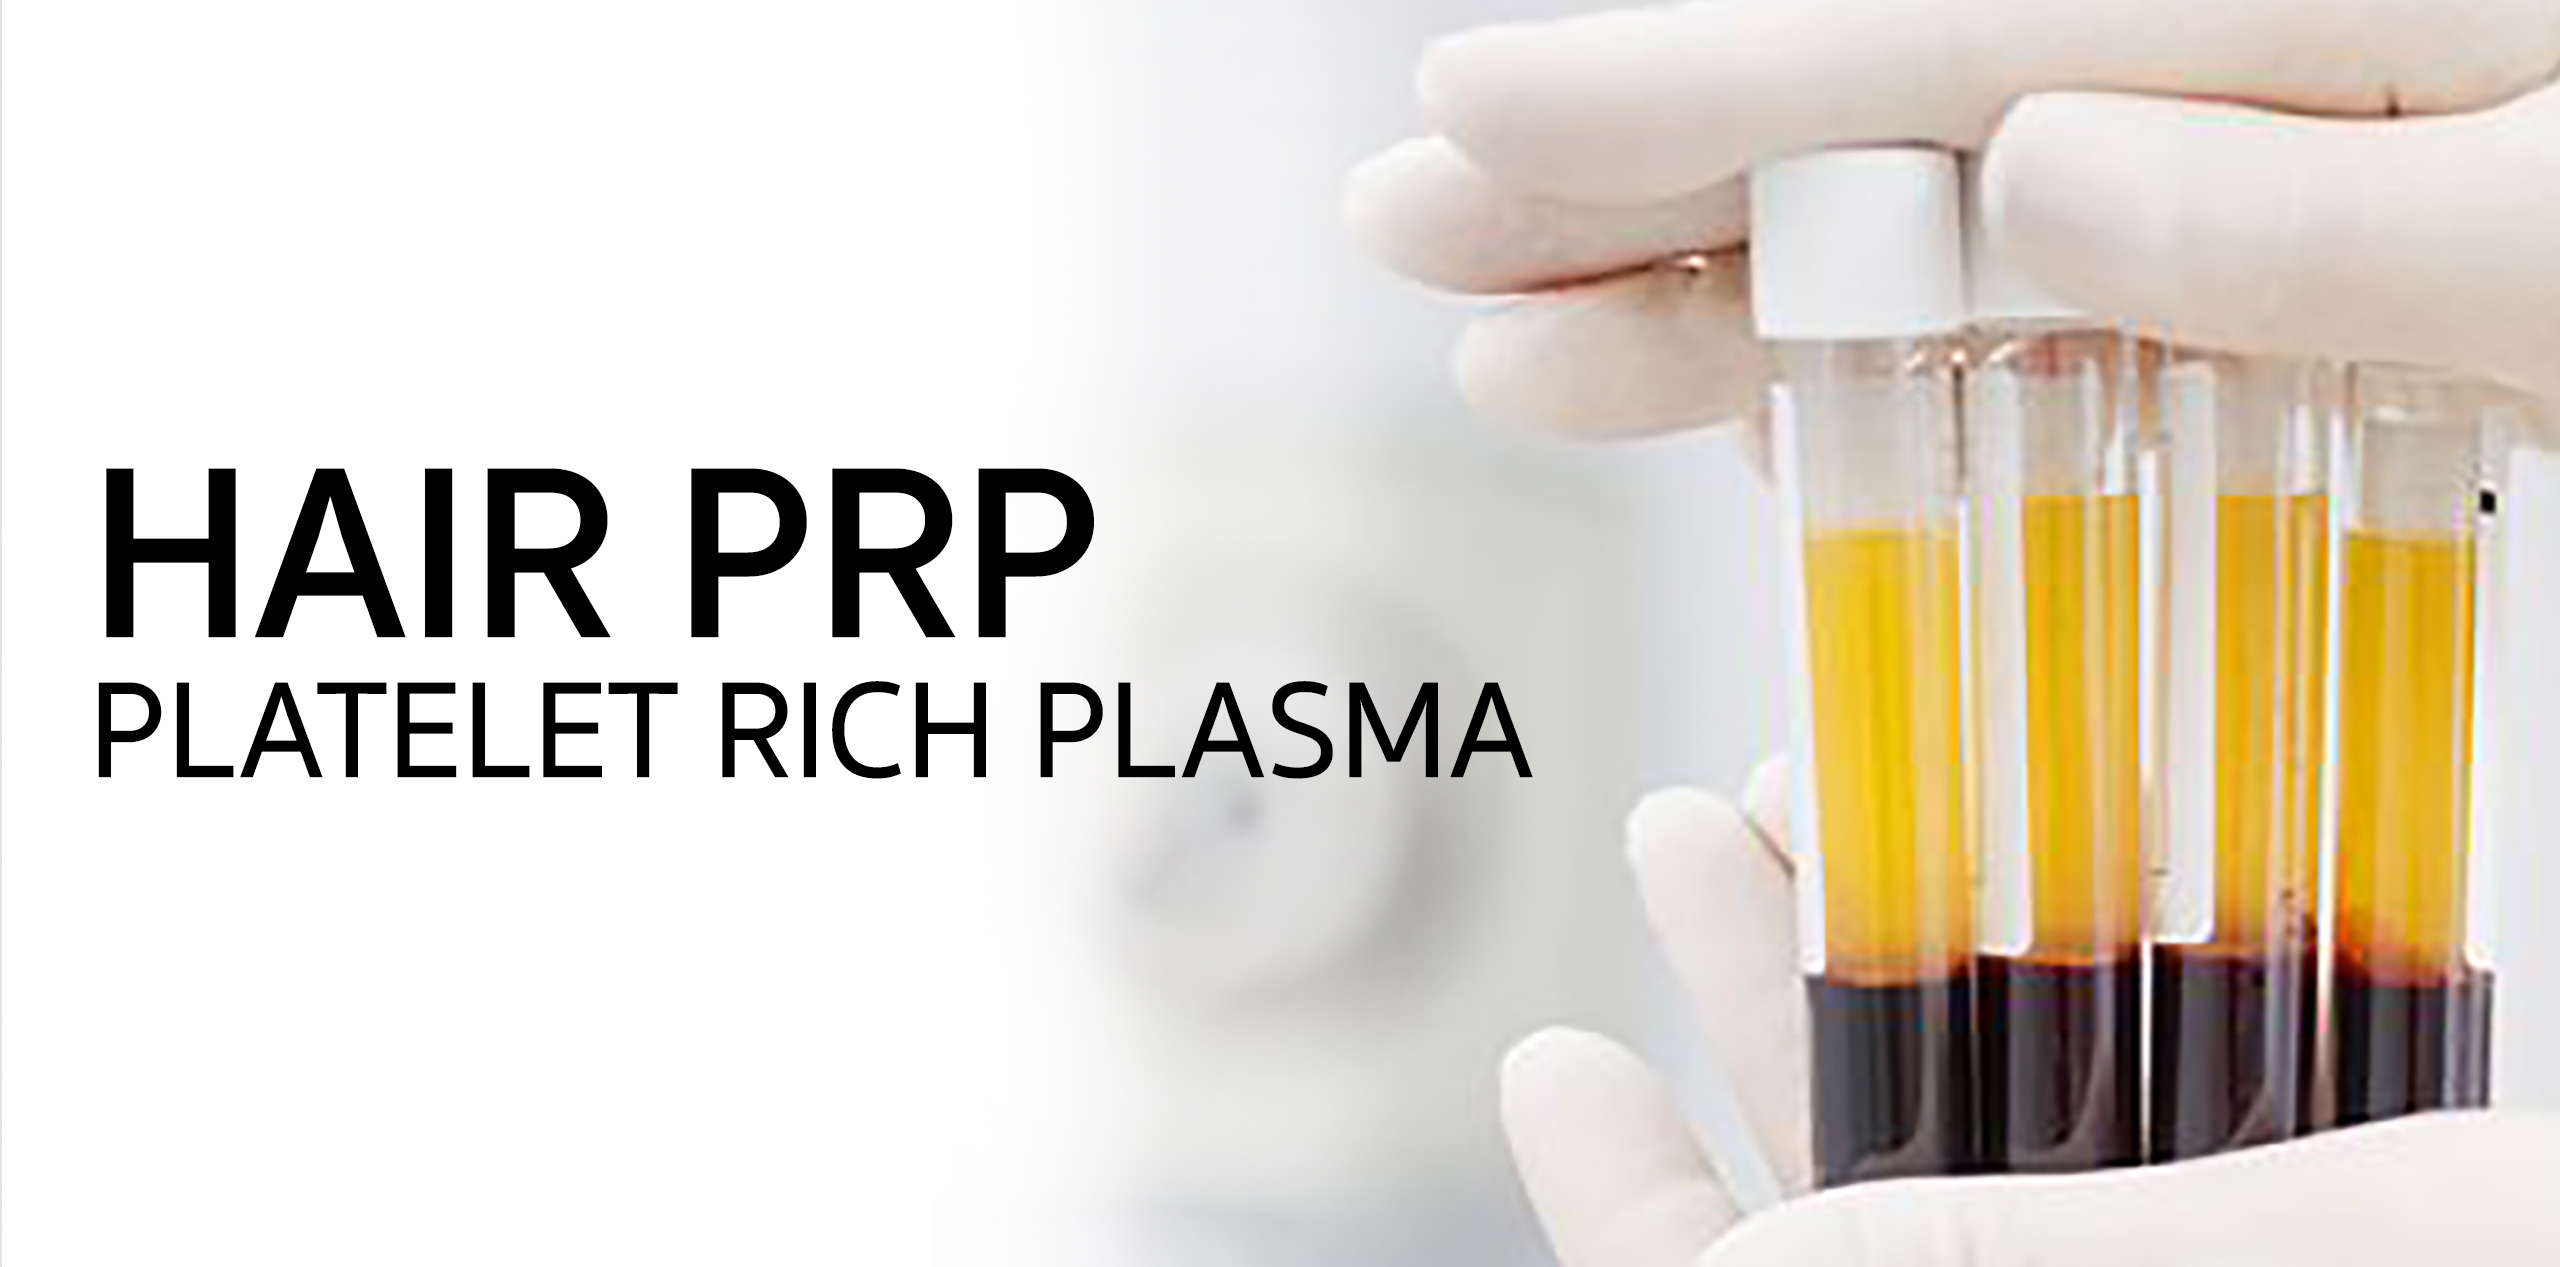 Hair Treatment: PRP (Platelet Rich Plasma)